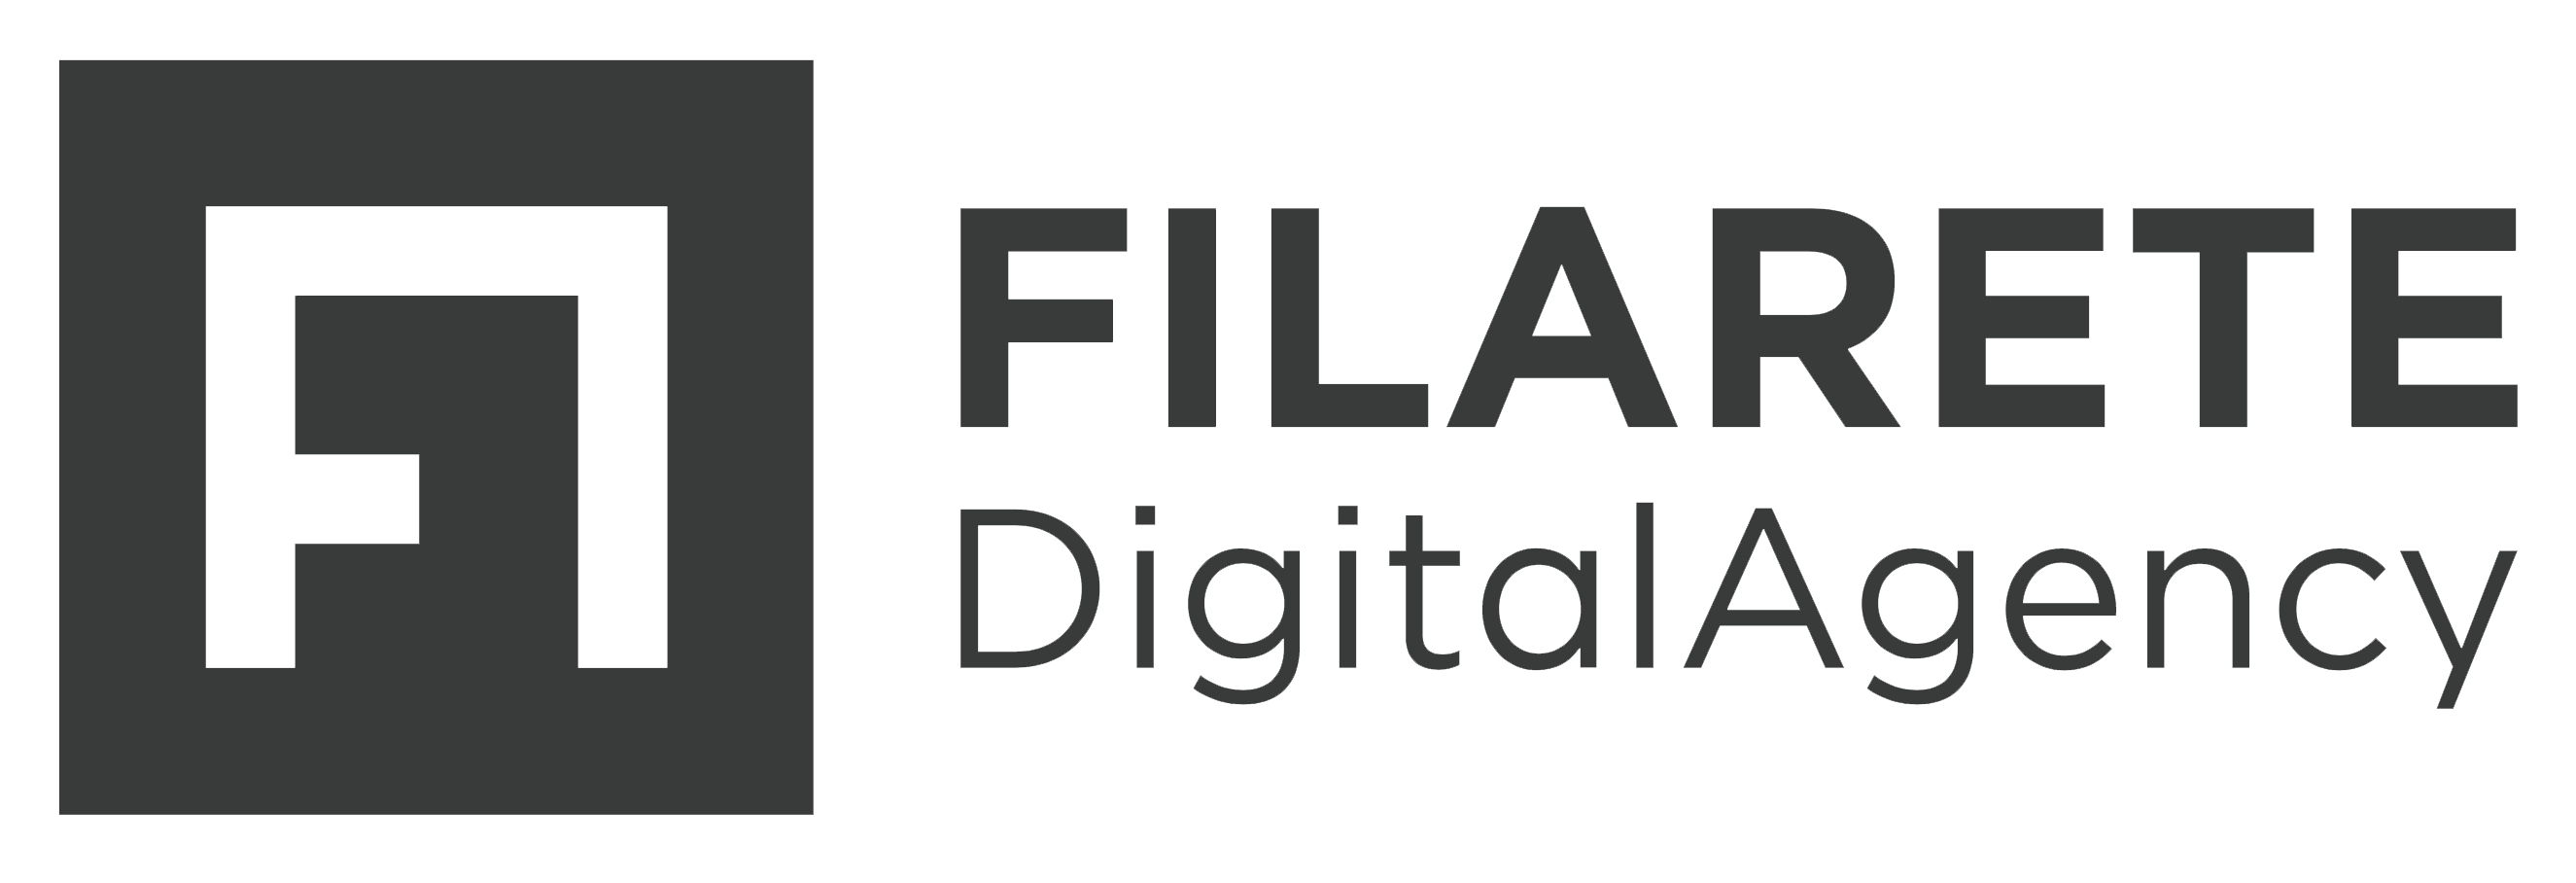 Filarete Digital Agency